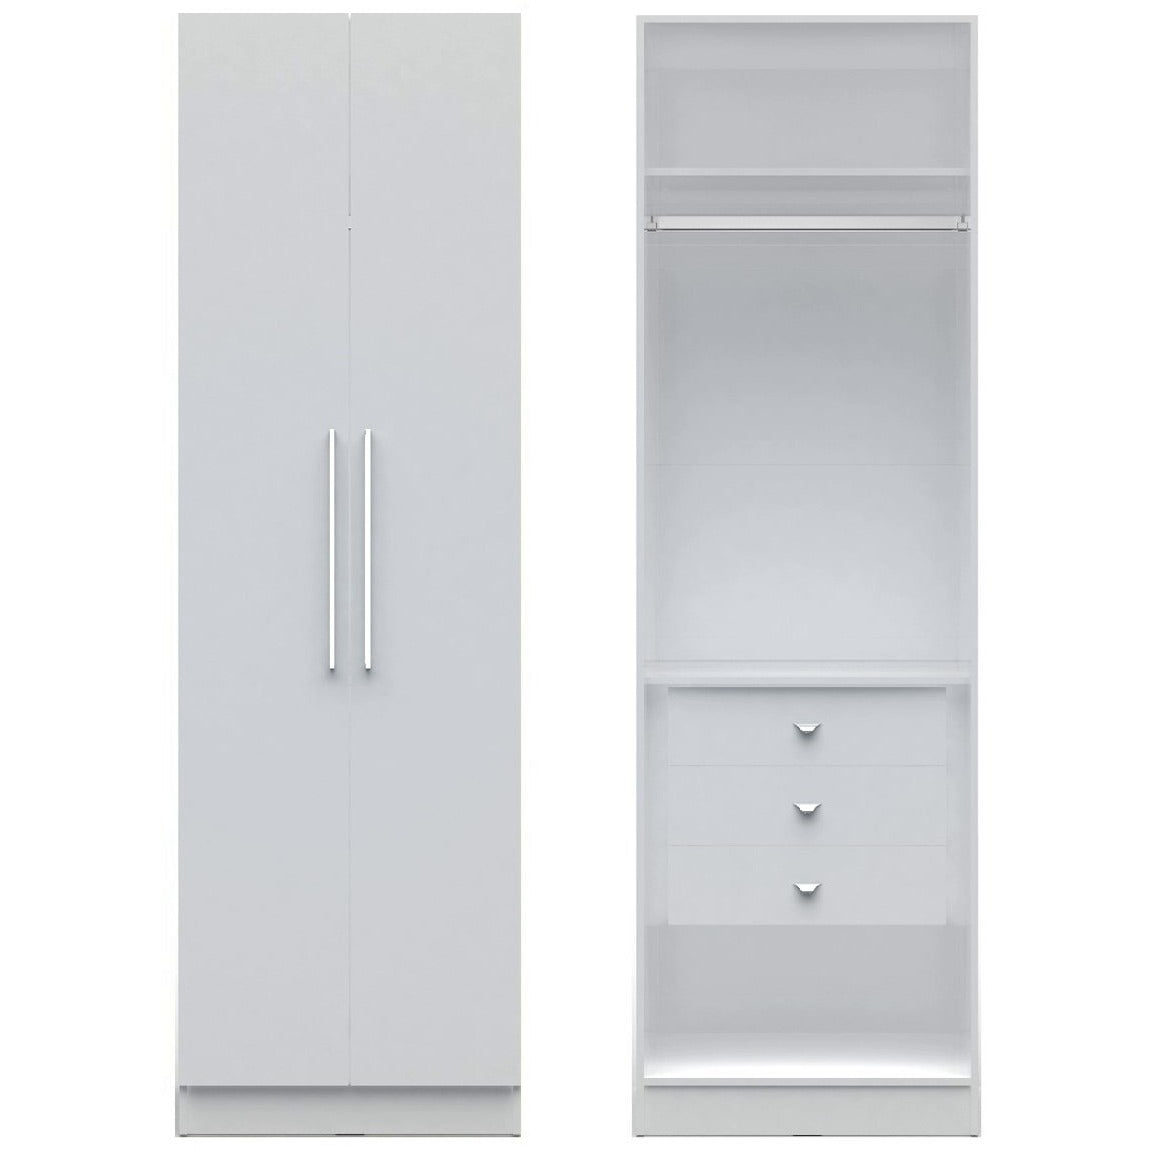 shelves storage x d comforter maple cabinet h alone chelsea rod with manhattan long hanging shop closet cream w wardrobe and collection buy comfort stand